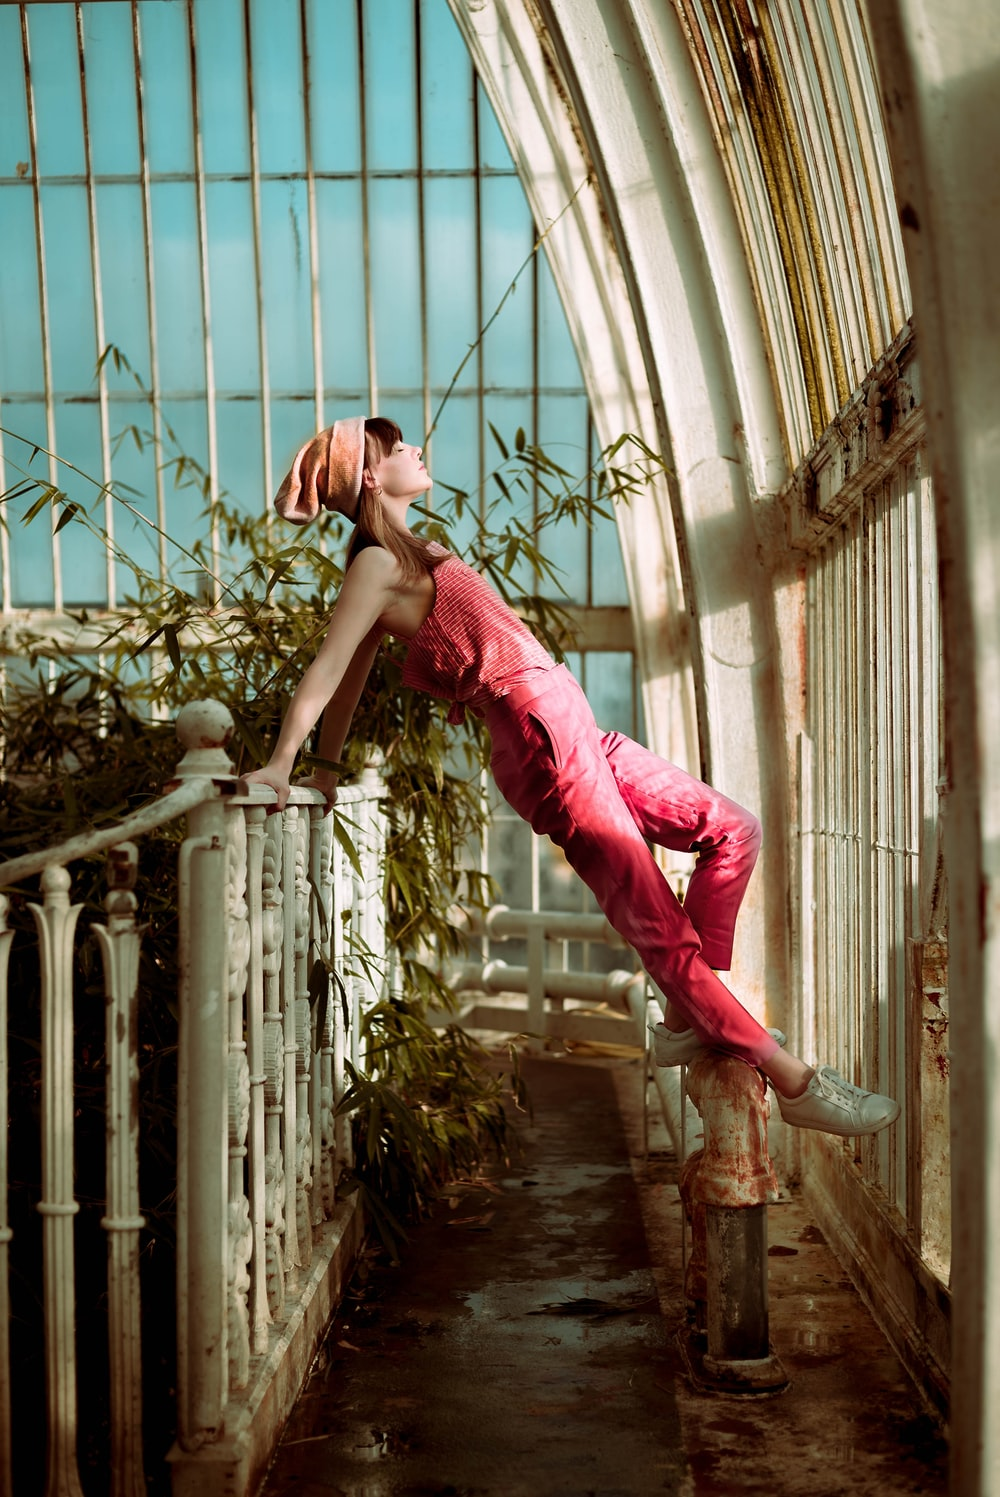 woman wearing pink overalls with feet on white pedestal while her hands holding on metal rail